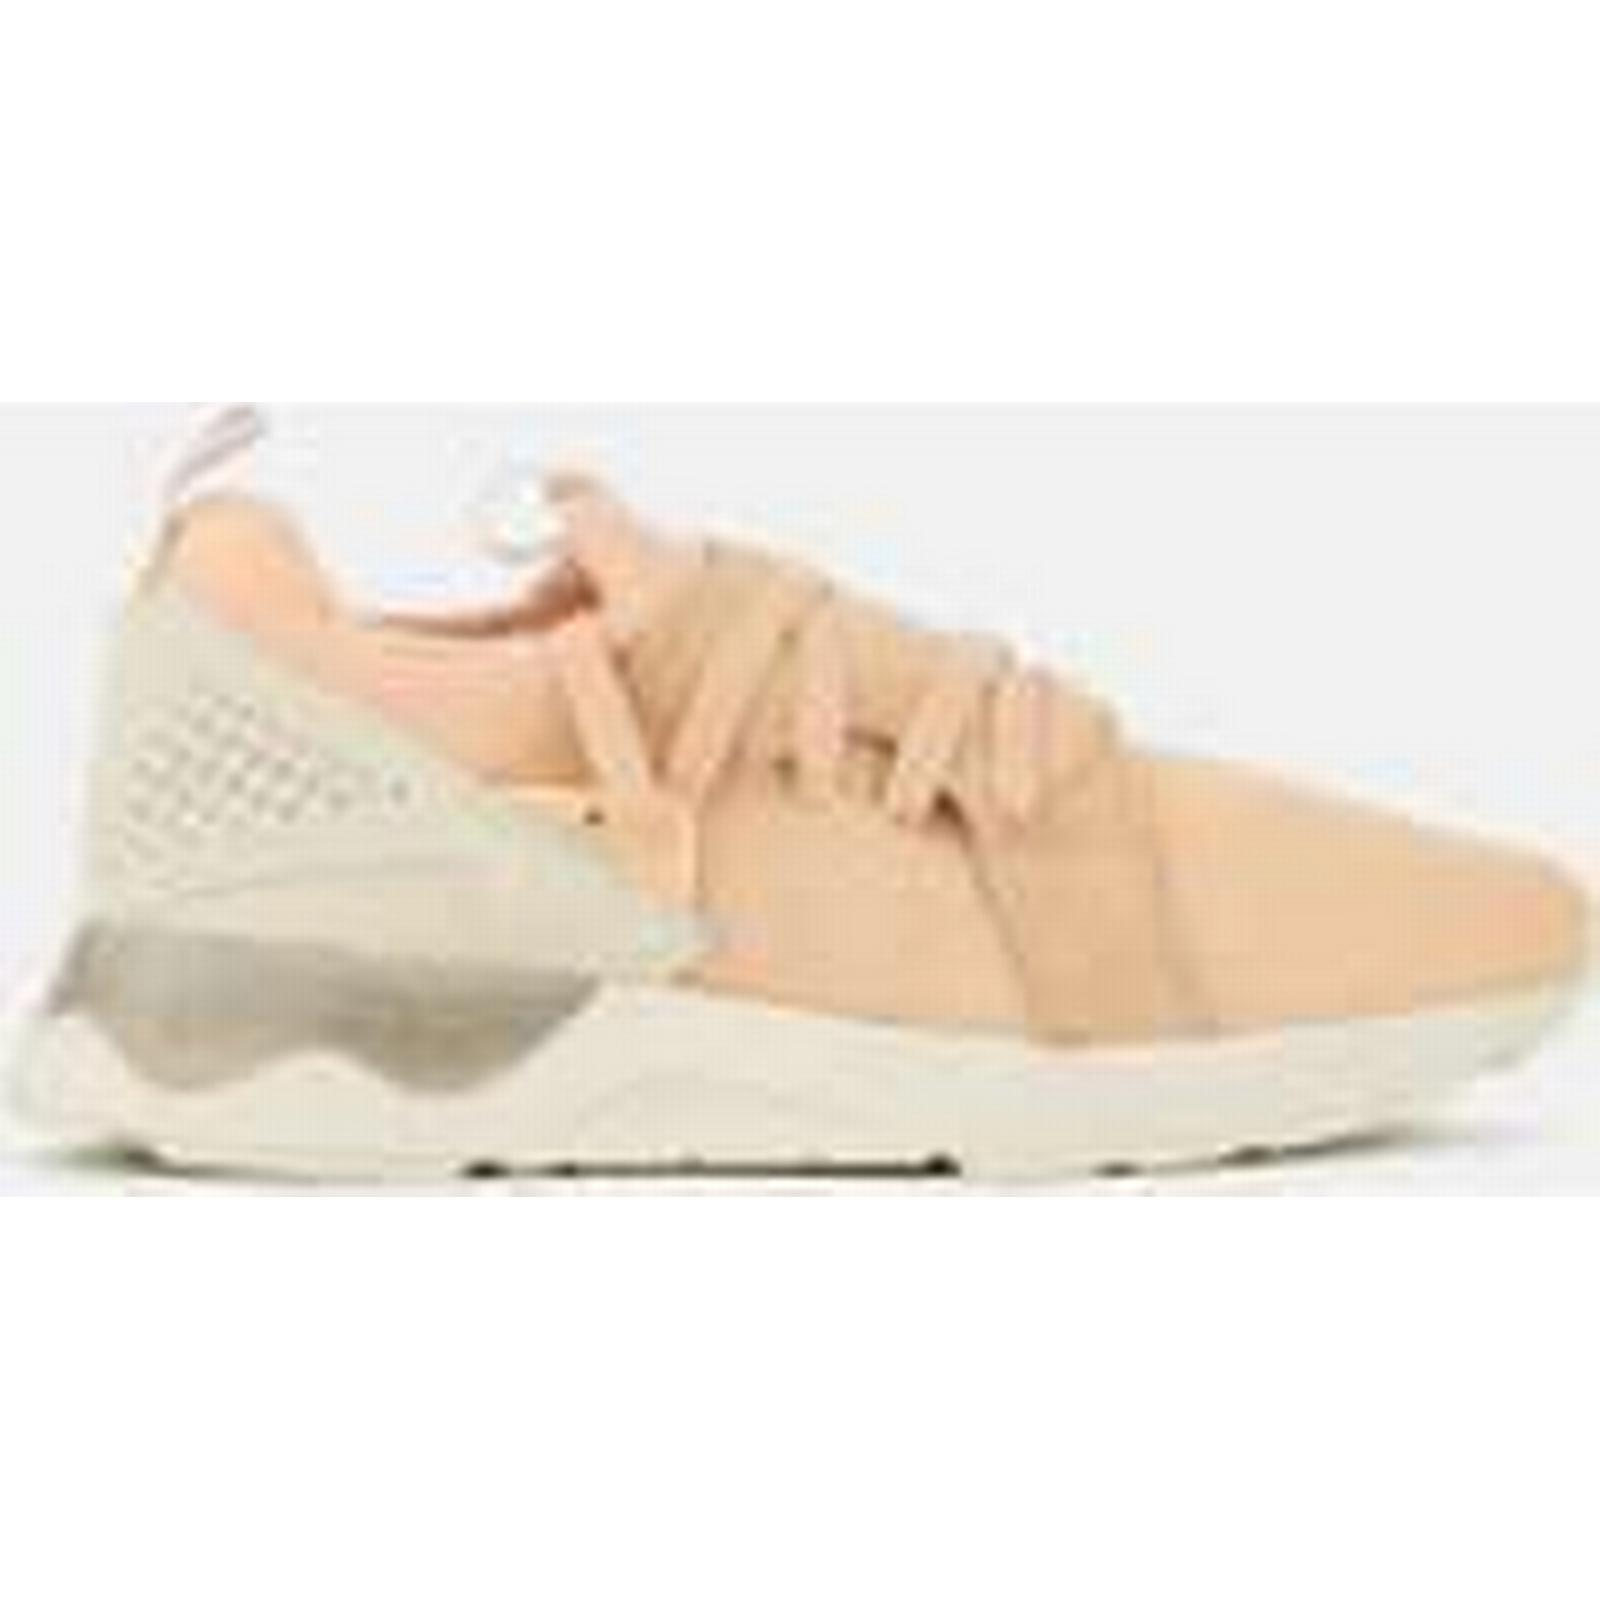 Asics Lifestyle Women's Gel-Lyte V Sanze Mesh Trainers - - Amberlight/Birch - UK 8 - - Pink 96cff3